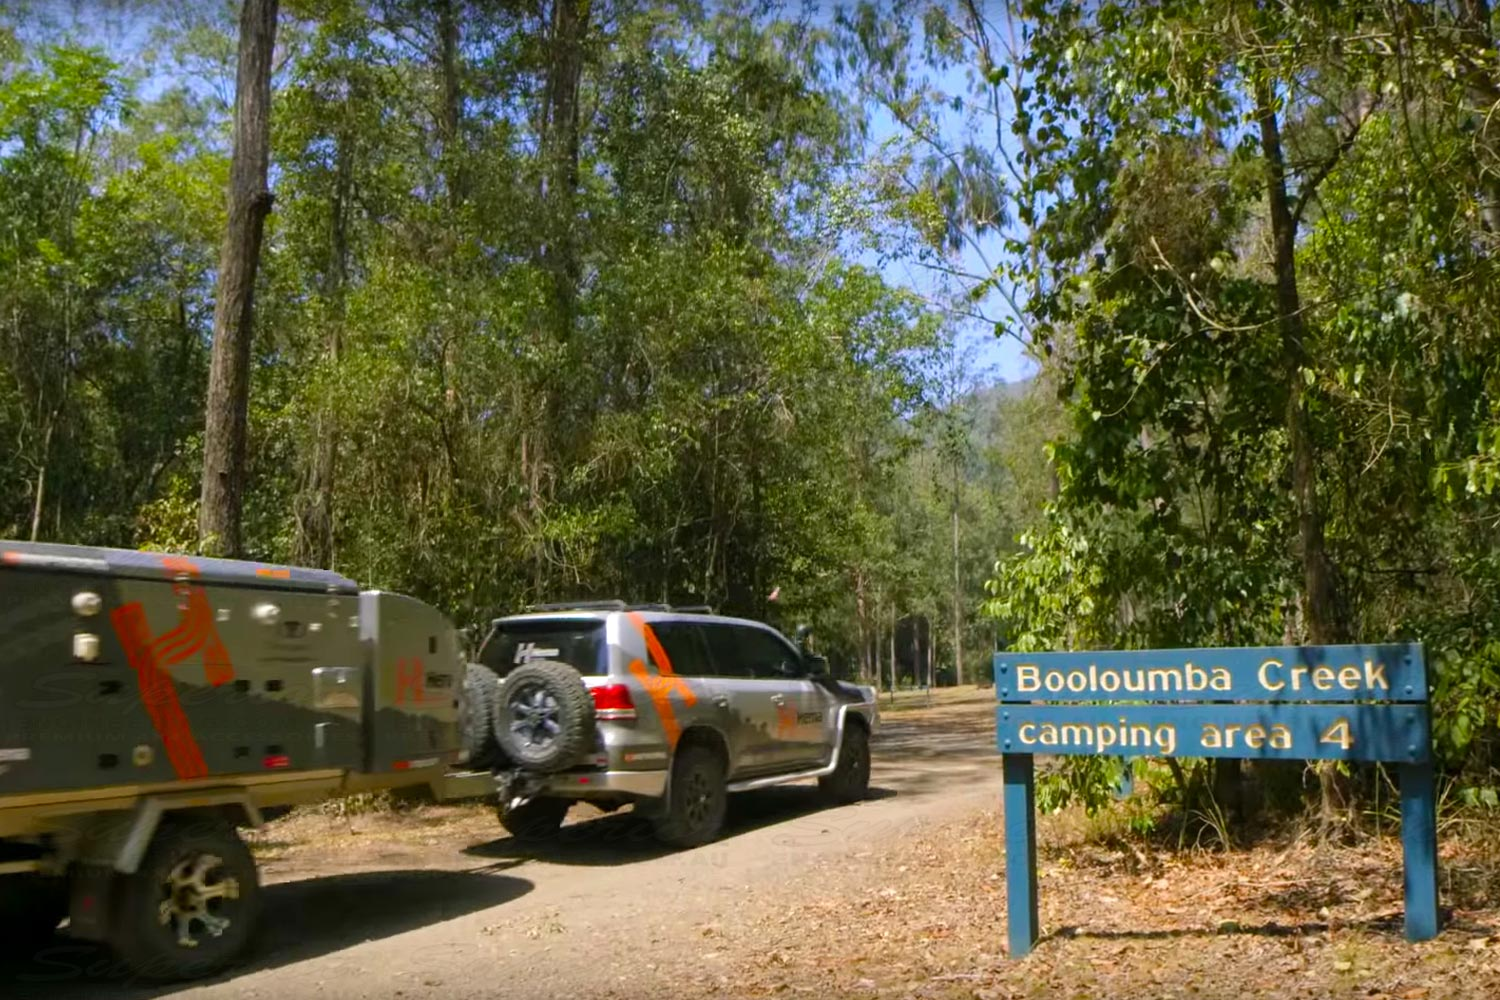 The Hema Navigator makes finding a camping spot very easy